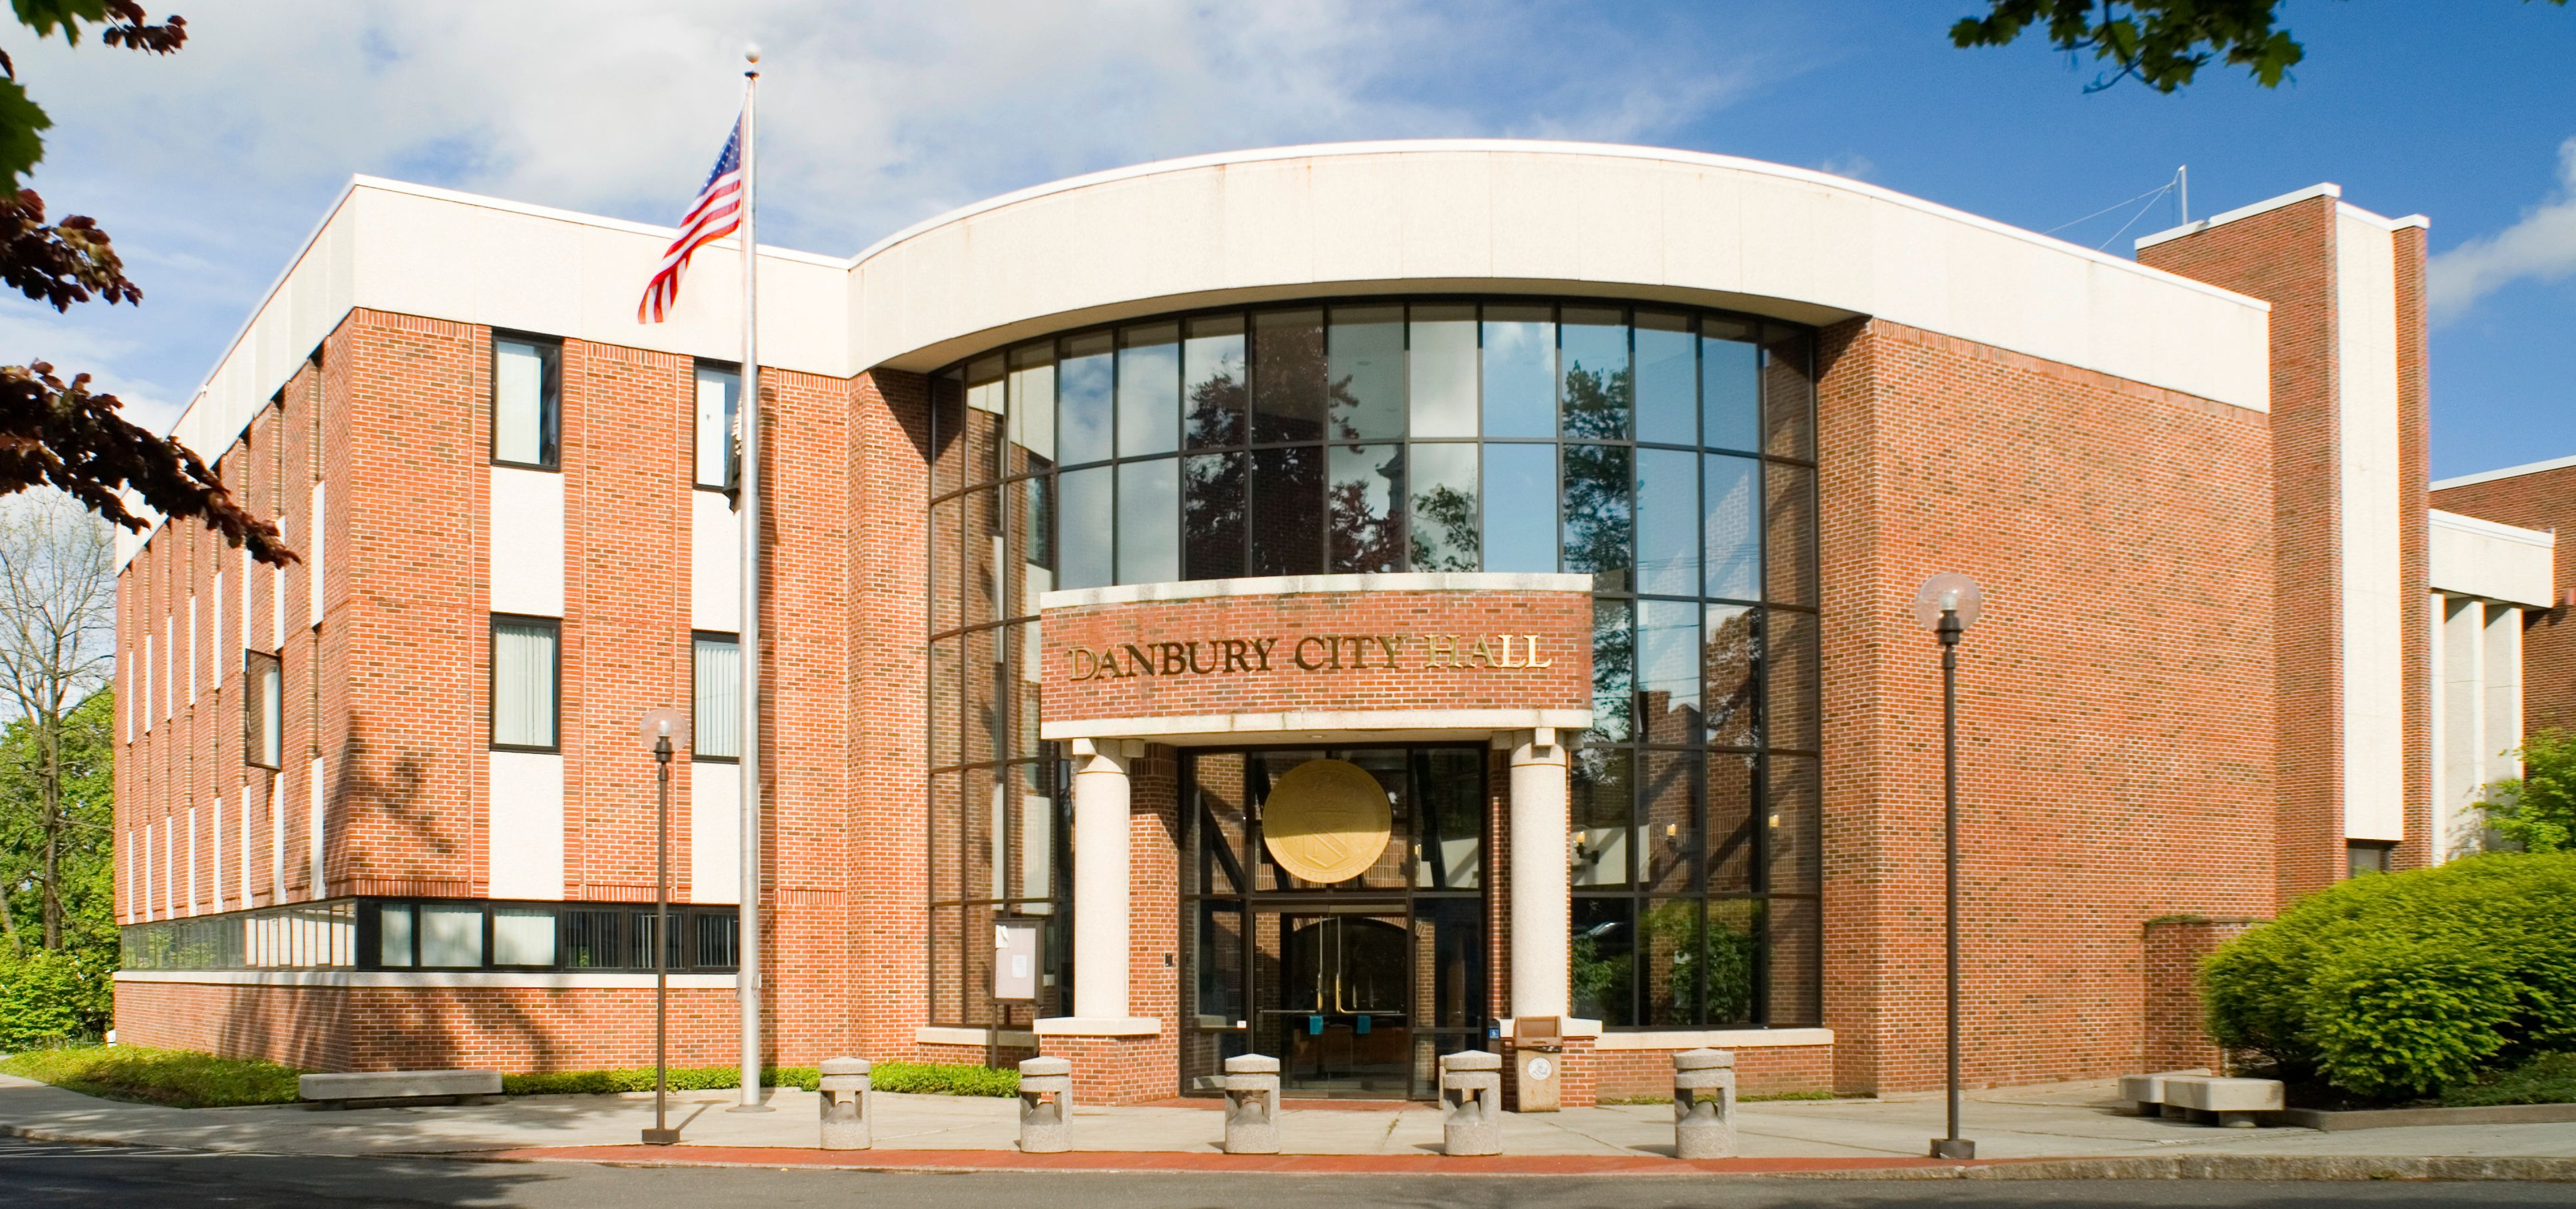 Danbury City Hall